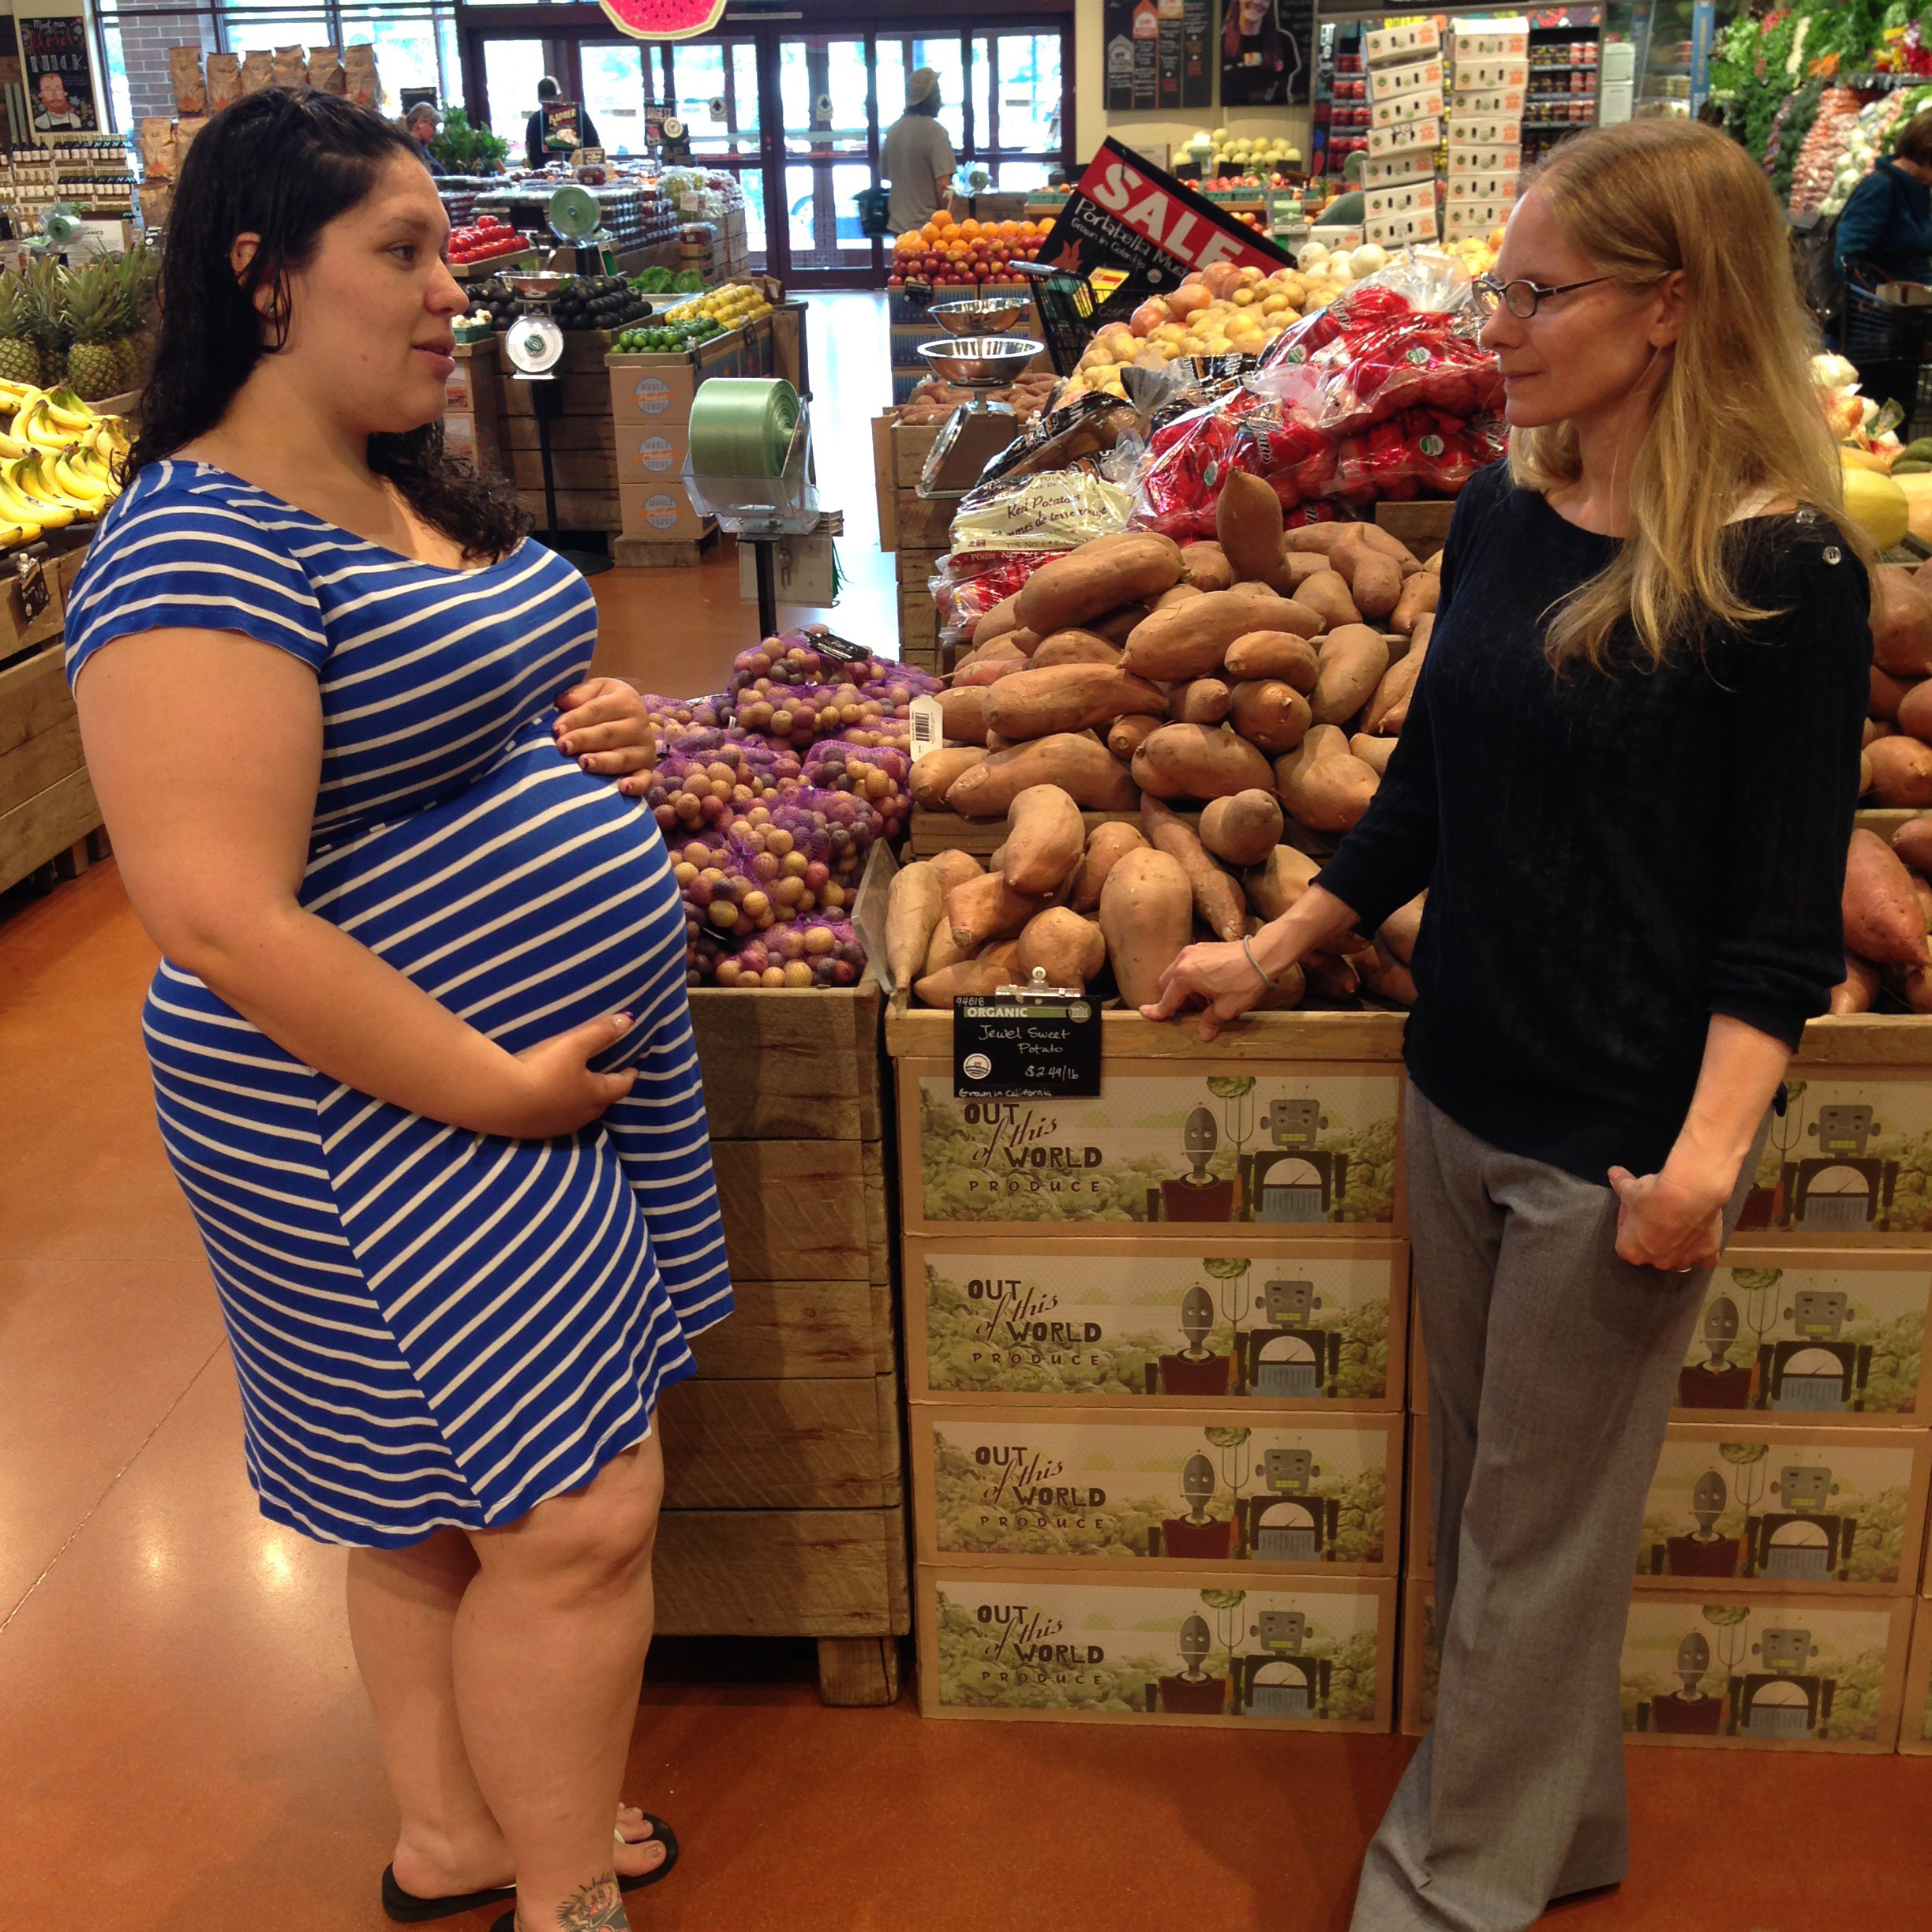 Cynthia Curl (right) discusses her study with Taylor Barrera-Lopez in the produce section of a local grocery store.